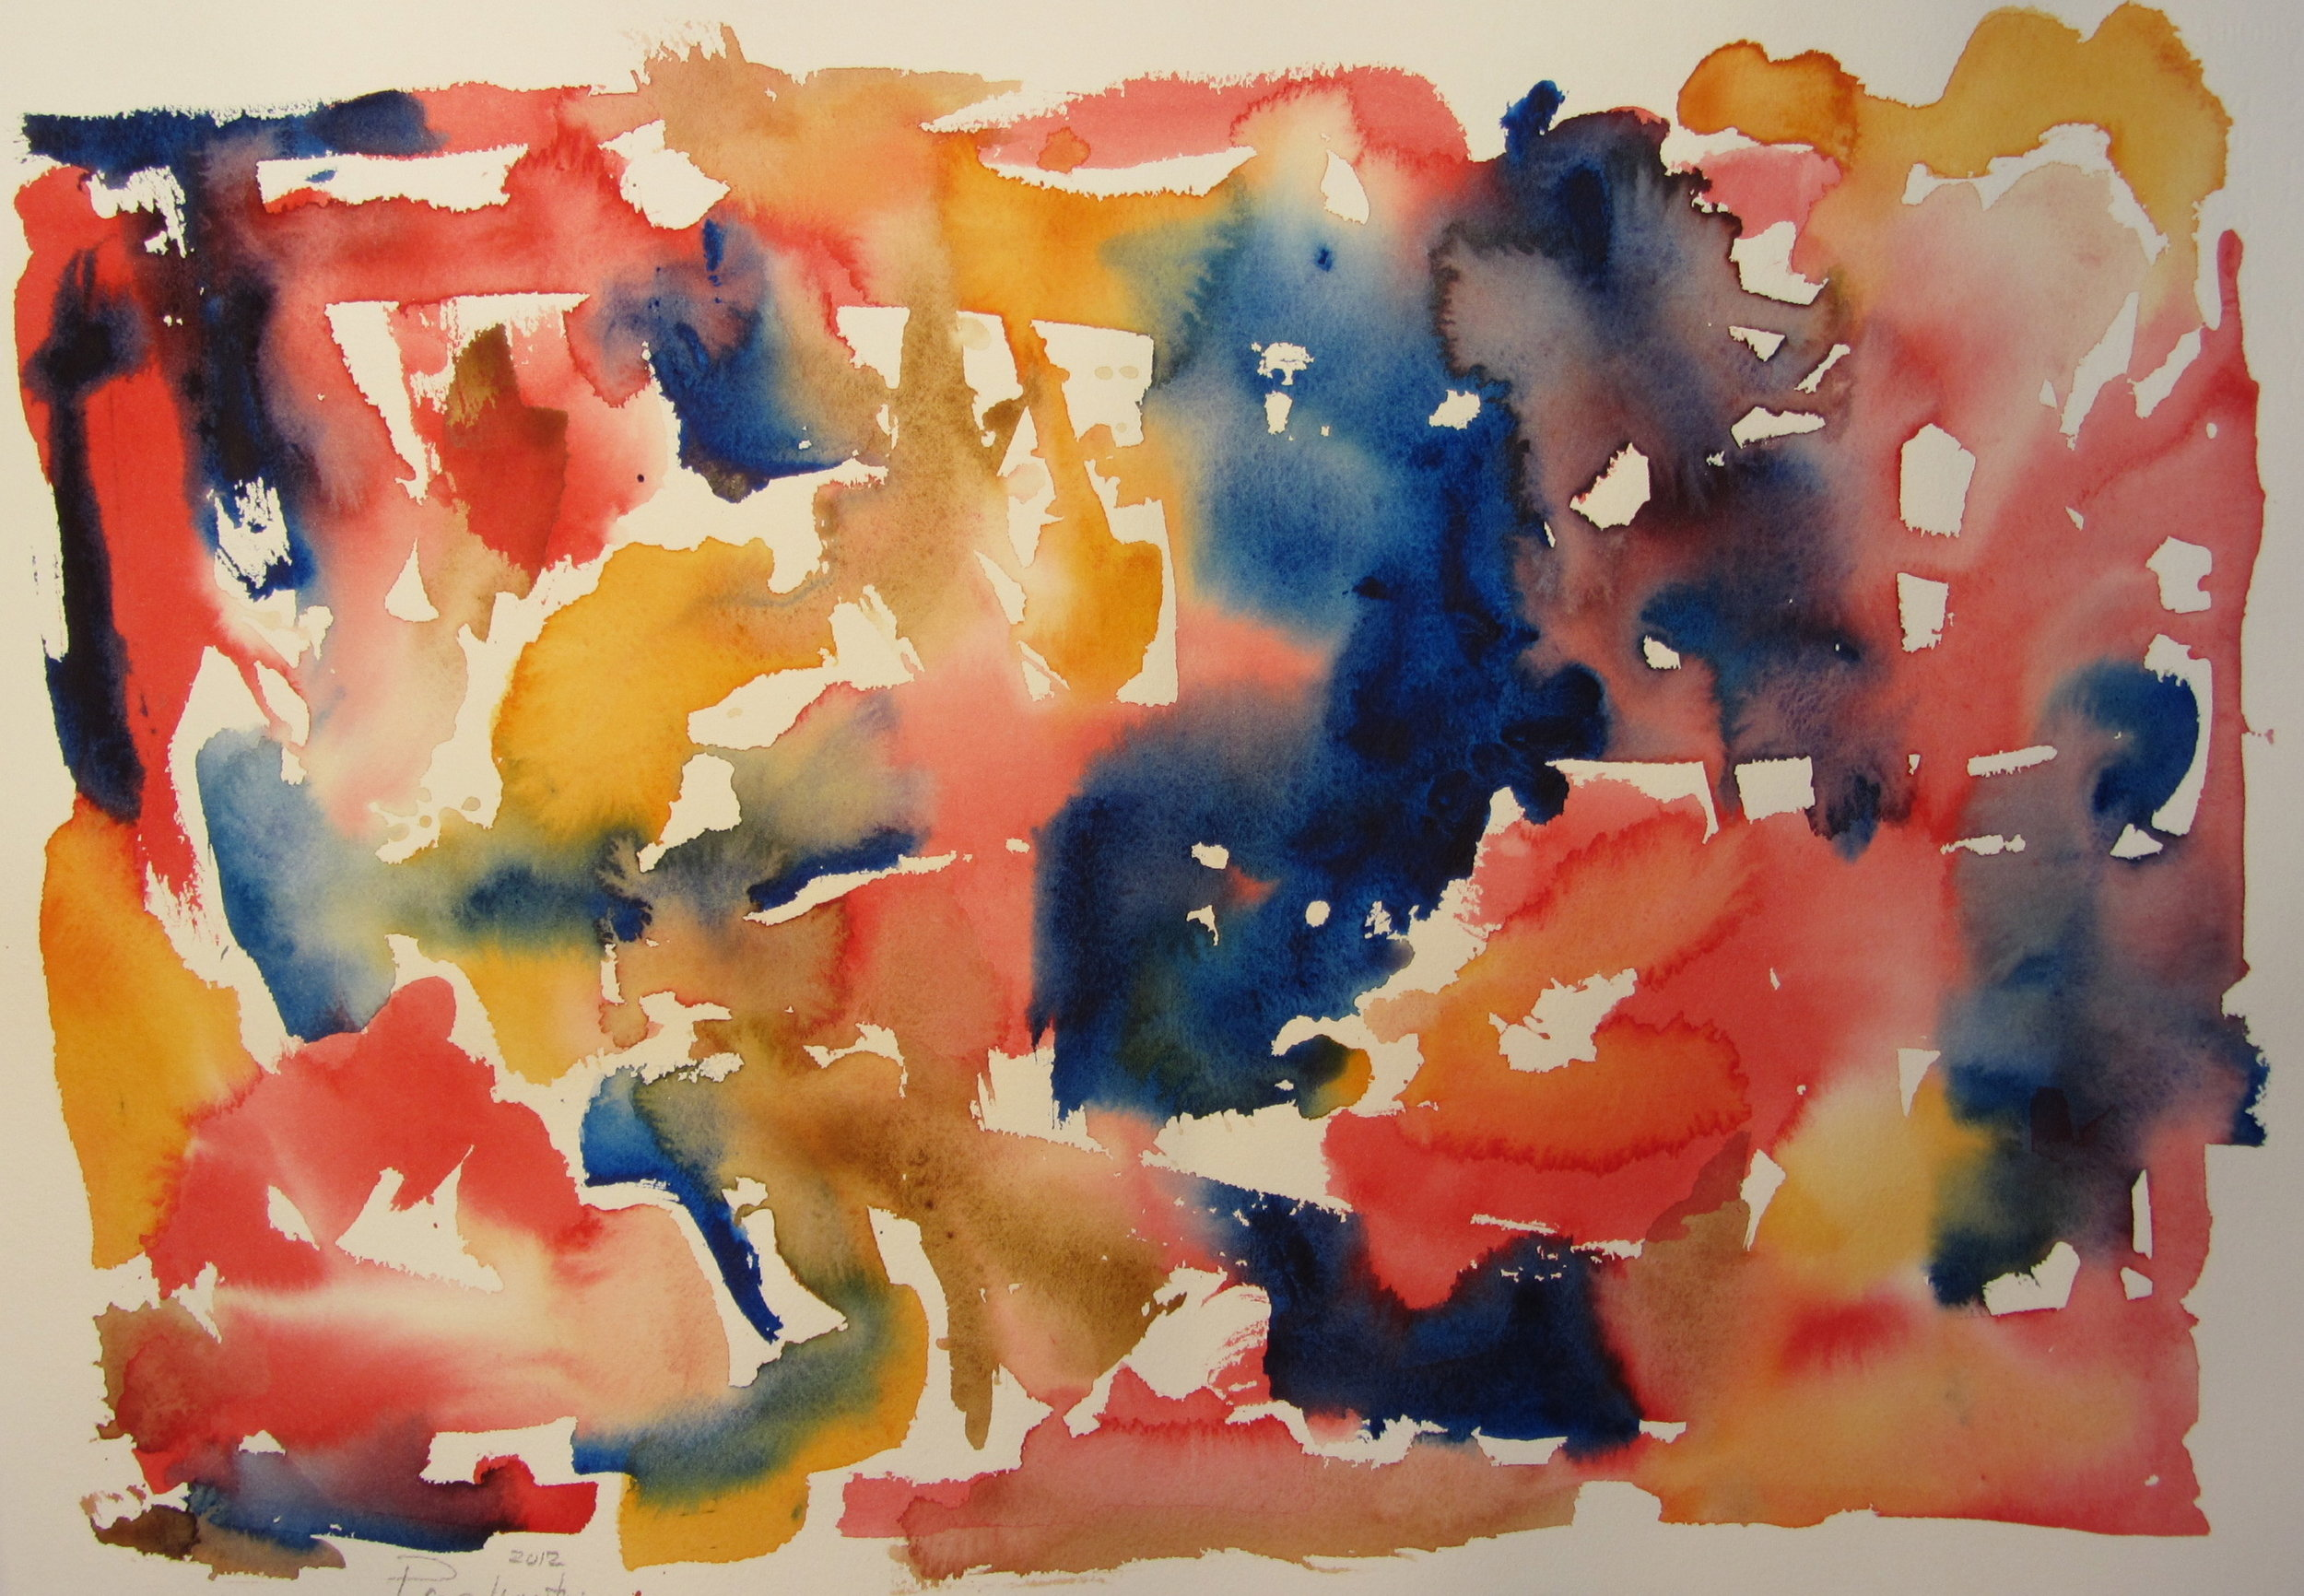 untitled 2012, watercolour on paper 38.10 x 55.88cm (15 x 22in.) -IMG_0017 .JPG